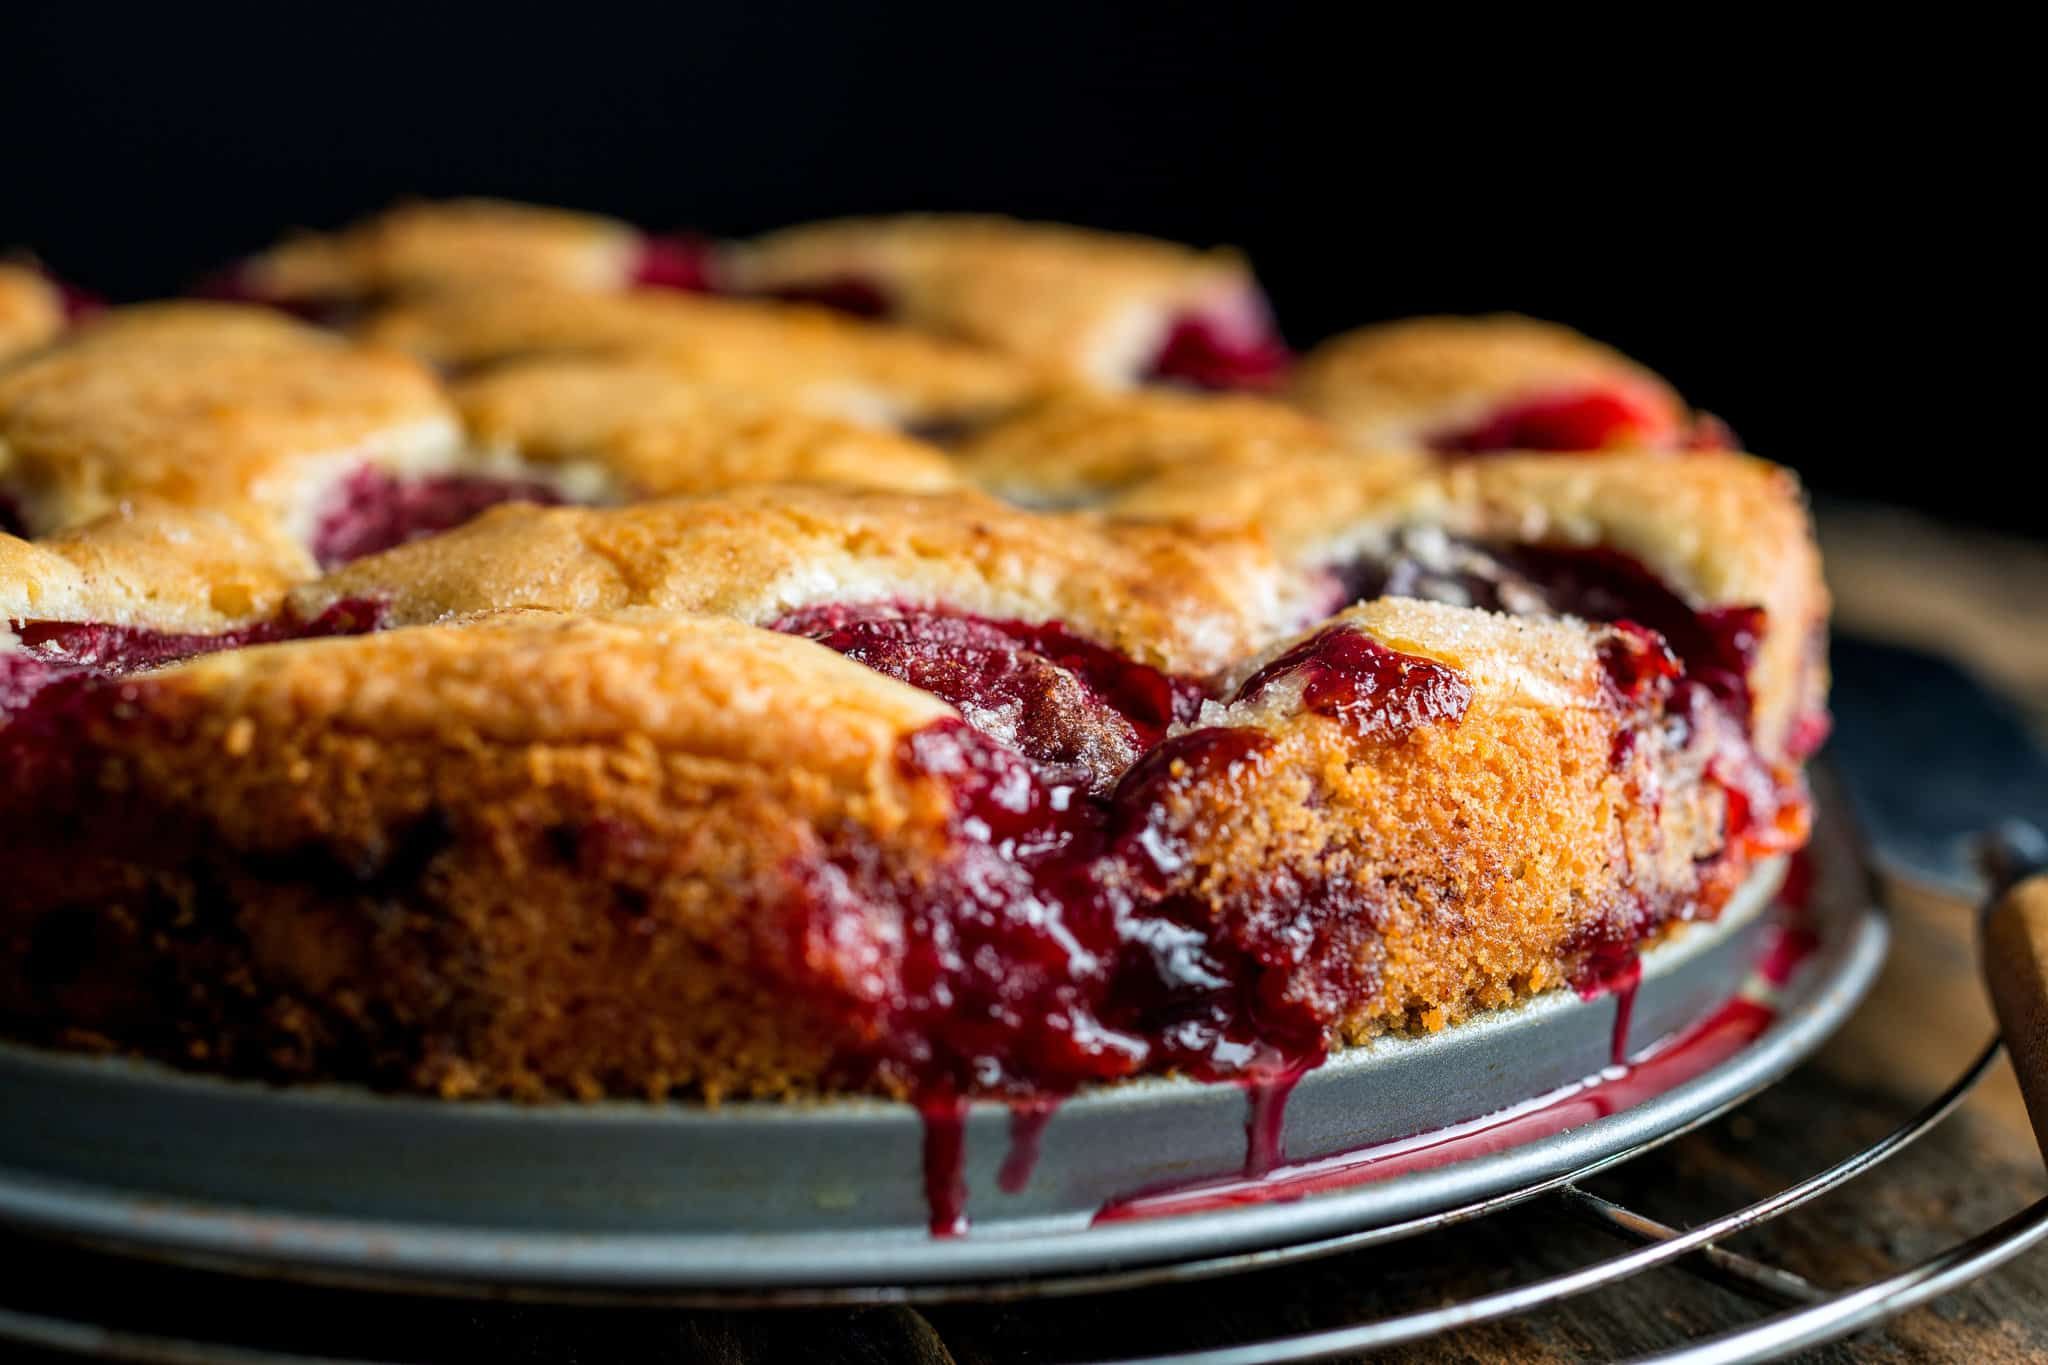 Original plum torte Mouth Watering Treats: 15 Delicious Recipes Made with Plums